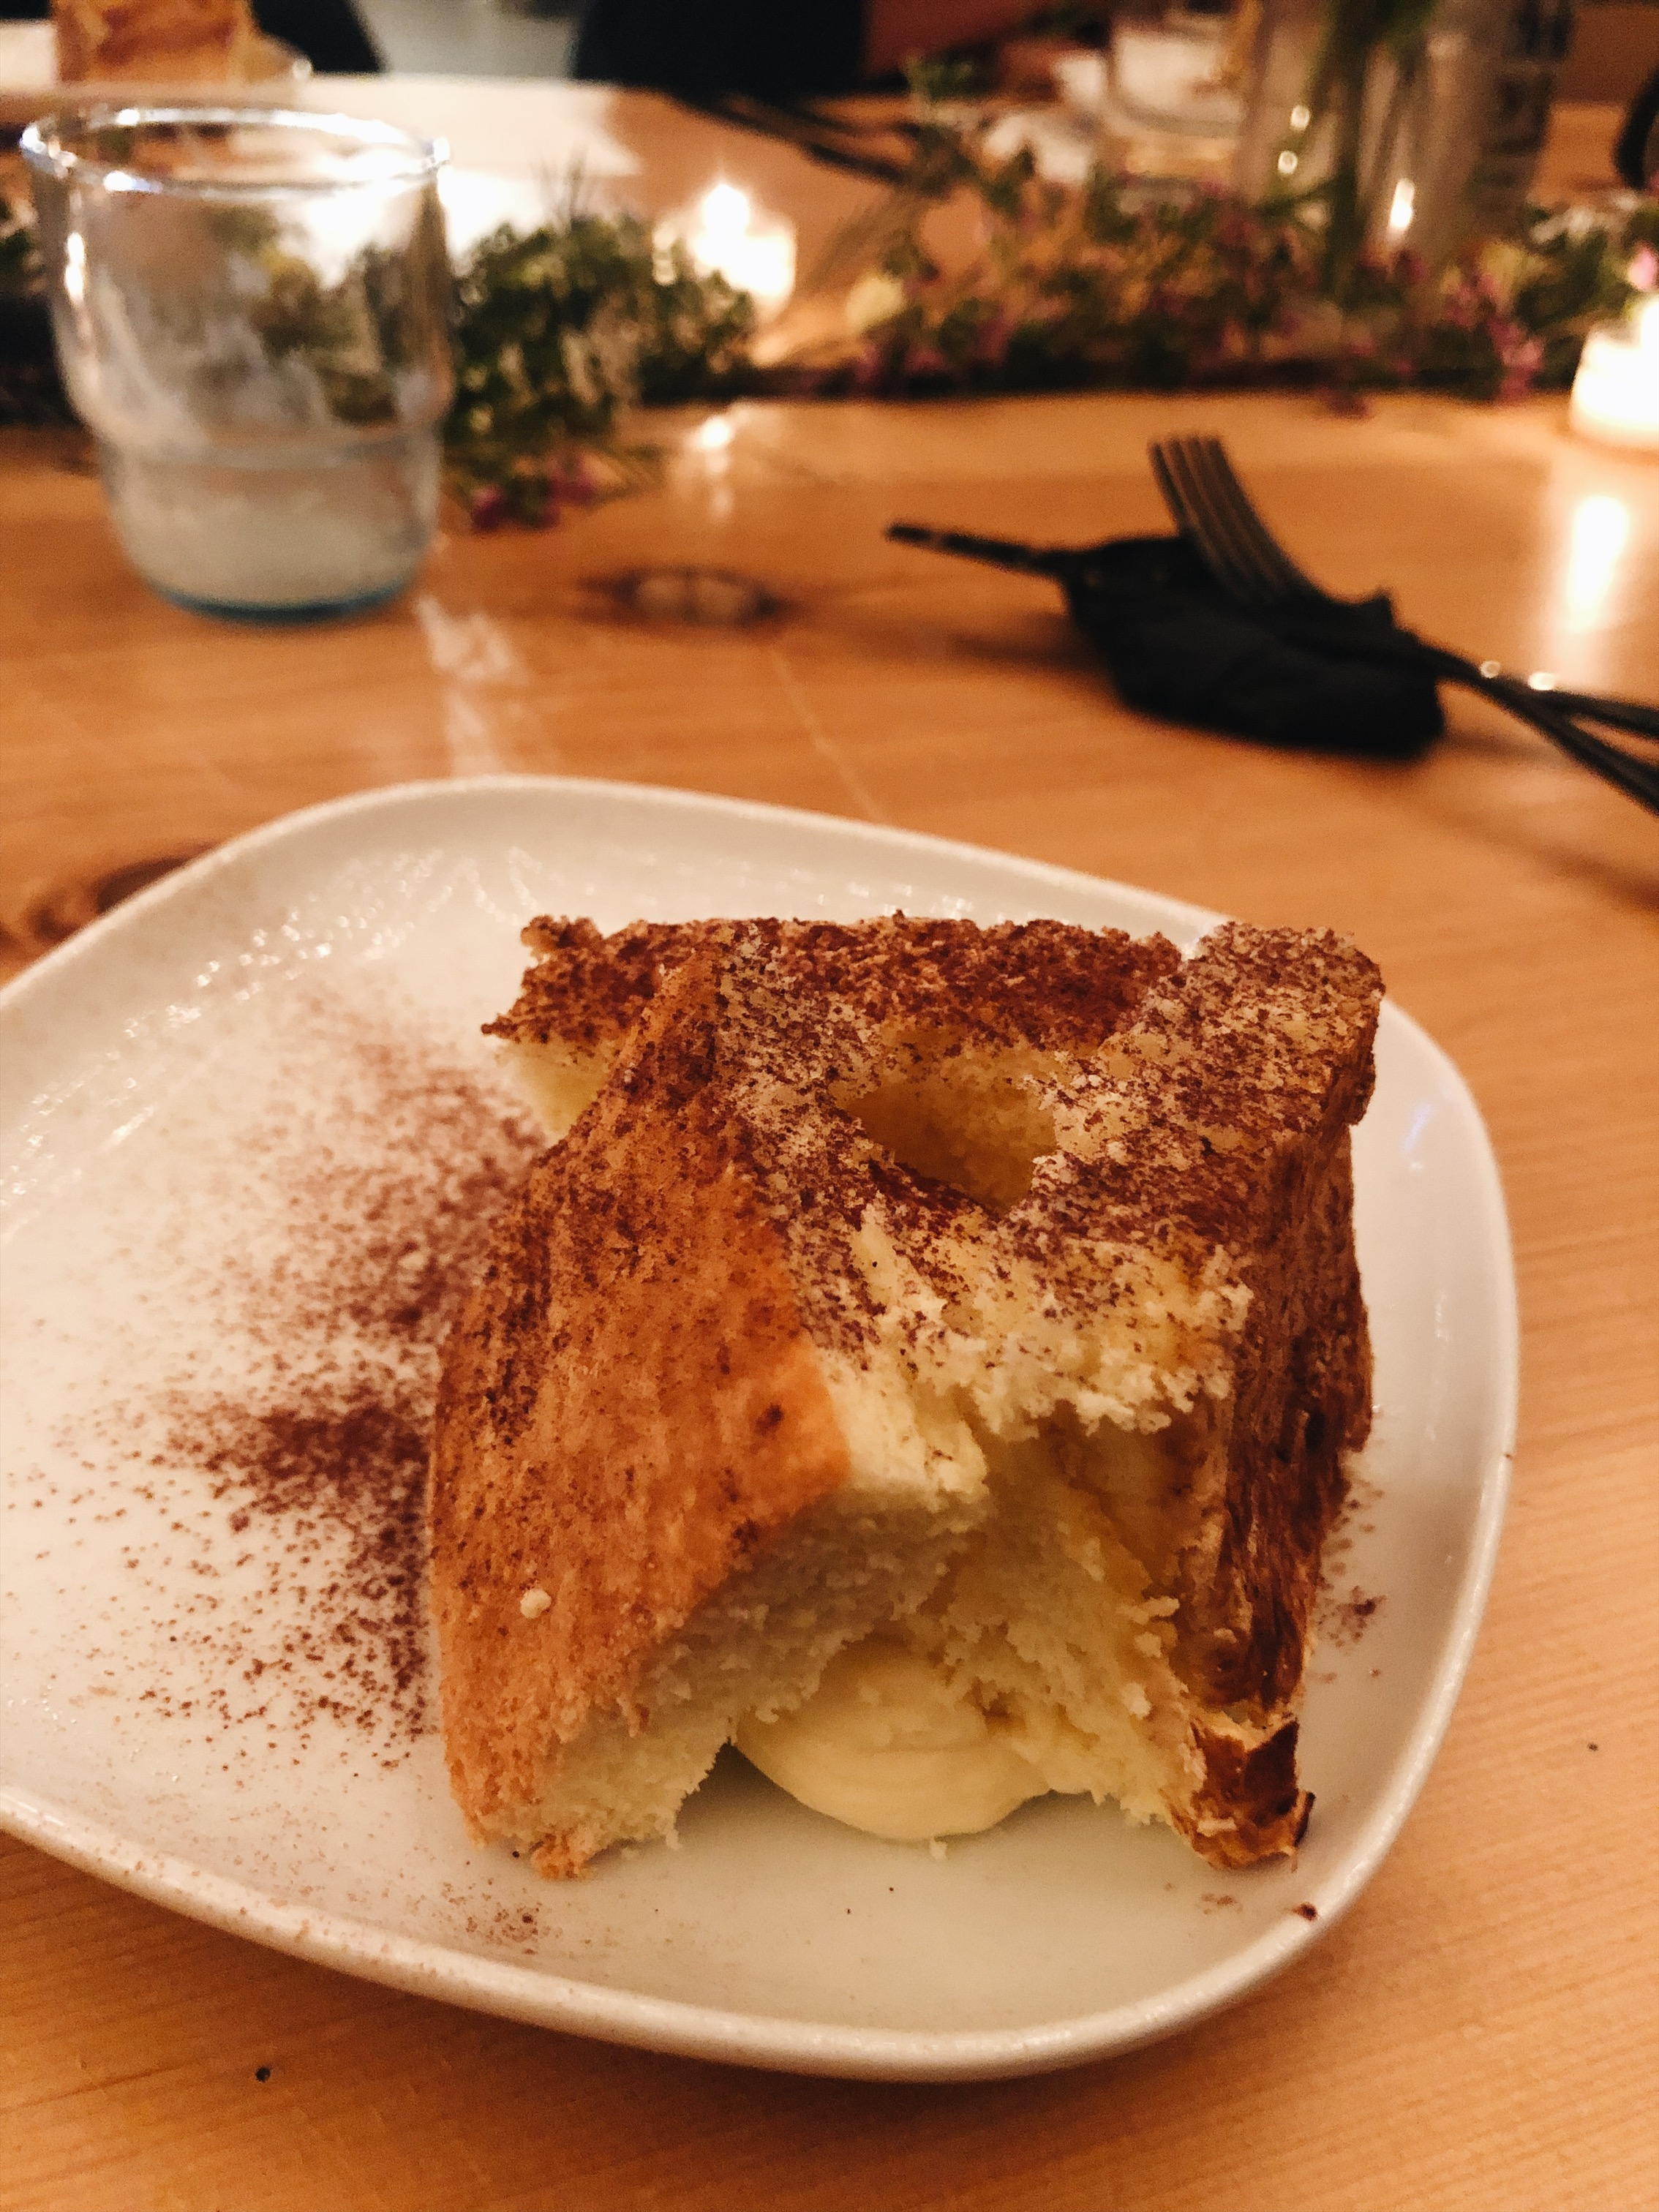 6th course: Coconut Sponge cake. Coconut tiramisu, not to crazy about dessert but this was really good.